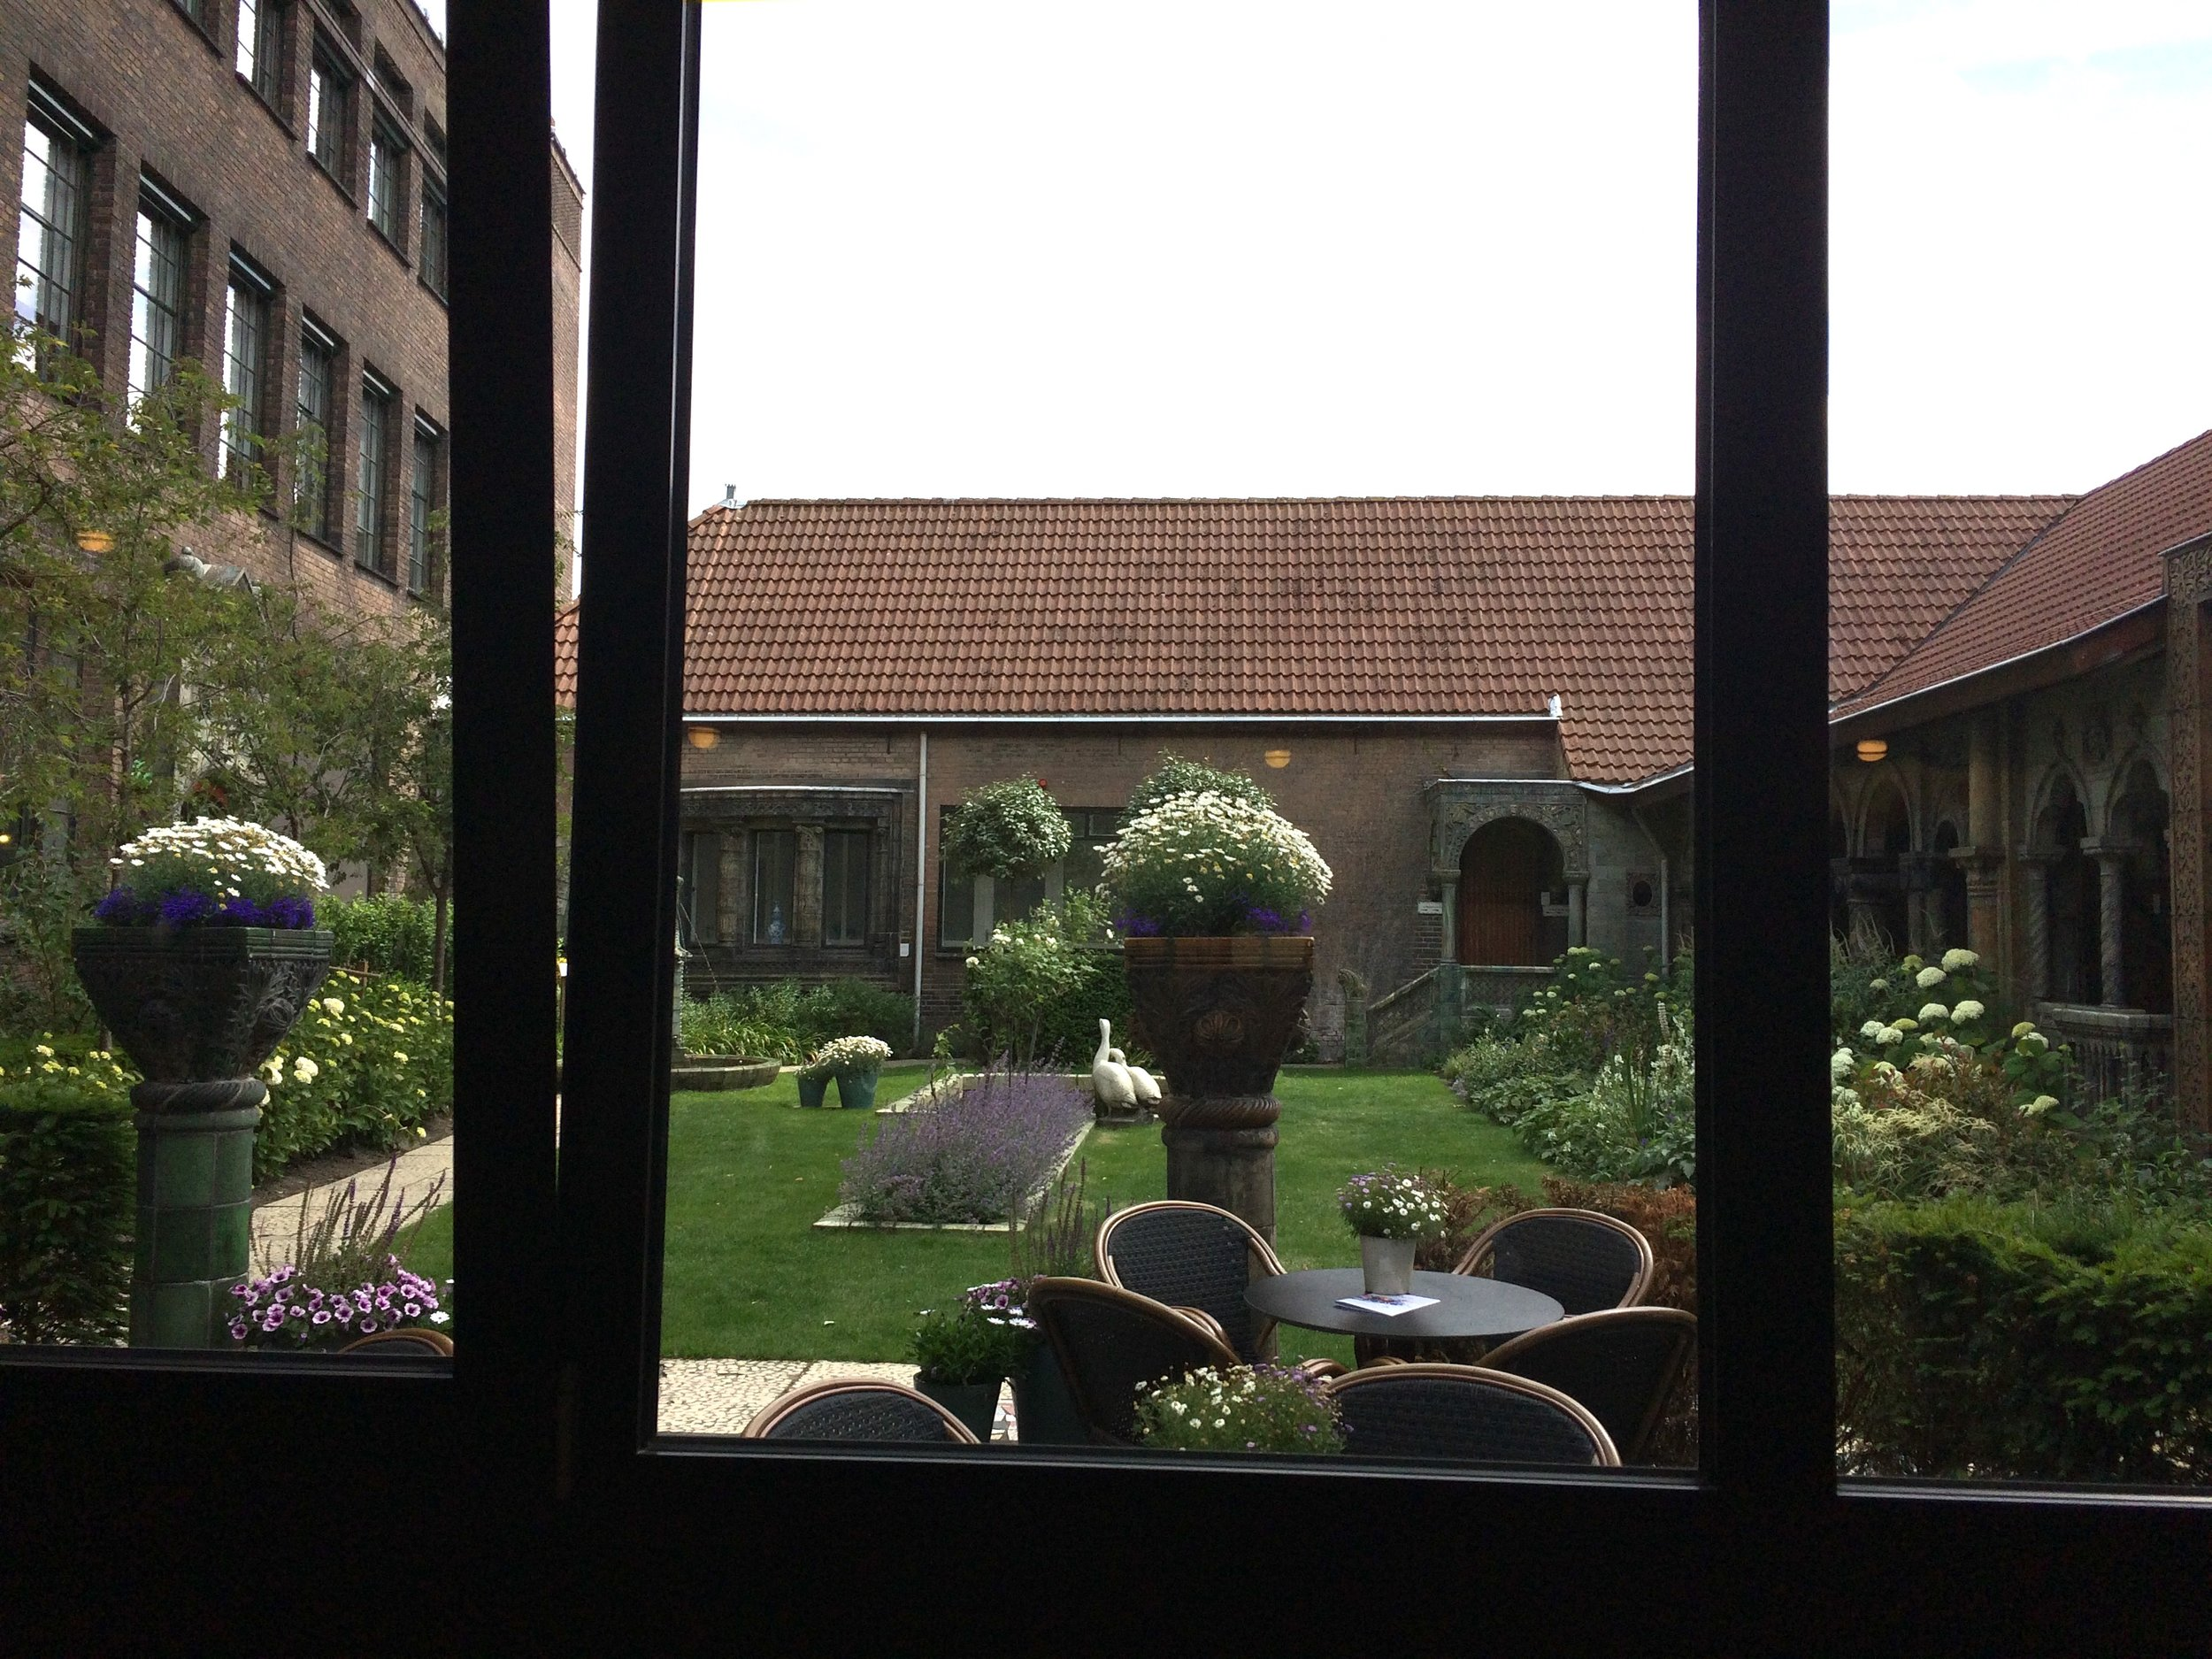 View from inside the Royal Delft Porcelain Factory, Delft, The Netherlands